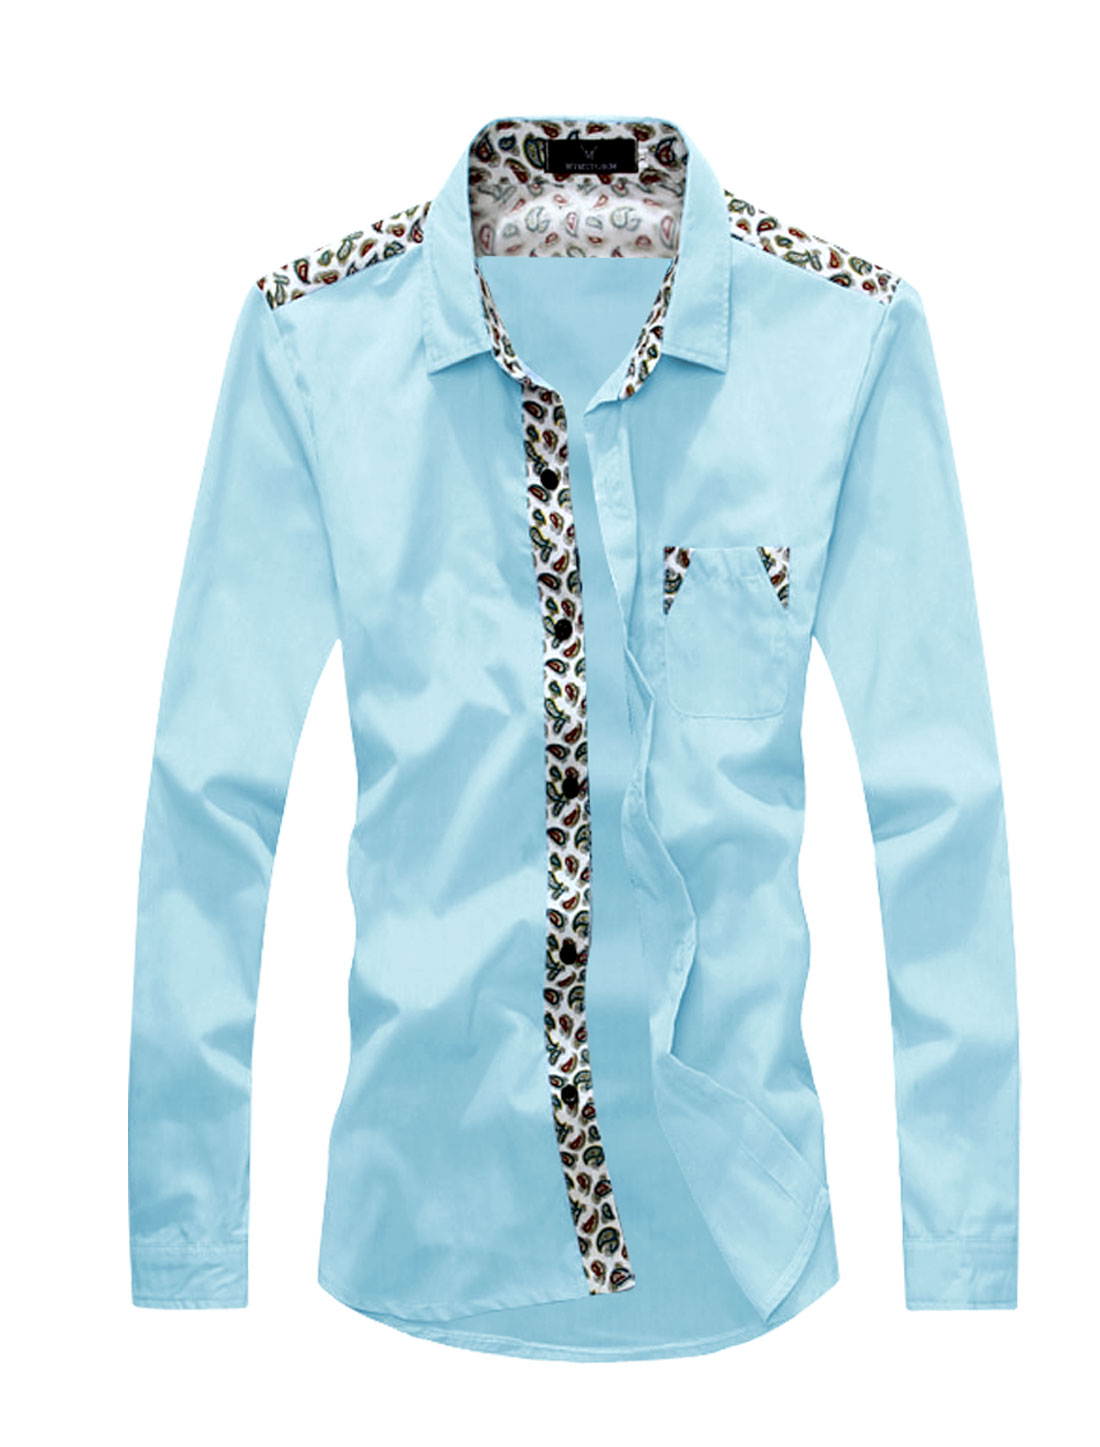 Men Point Collar Paisleys Chest Pocket Casual Shirts Light Blue S